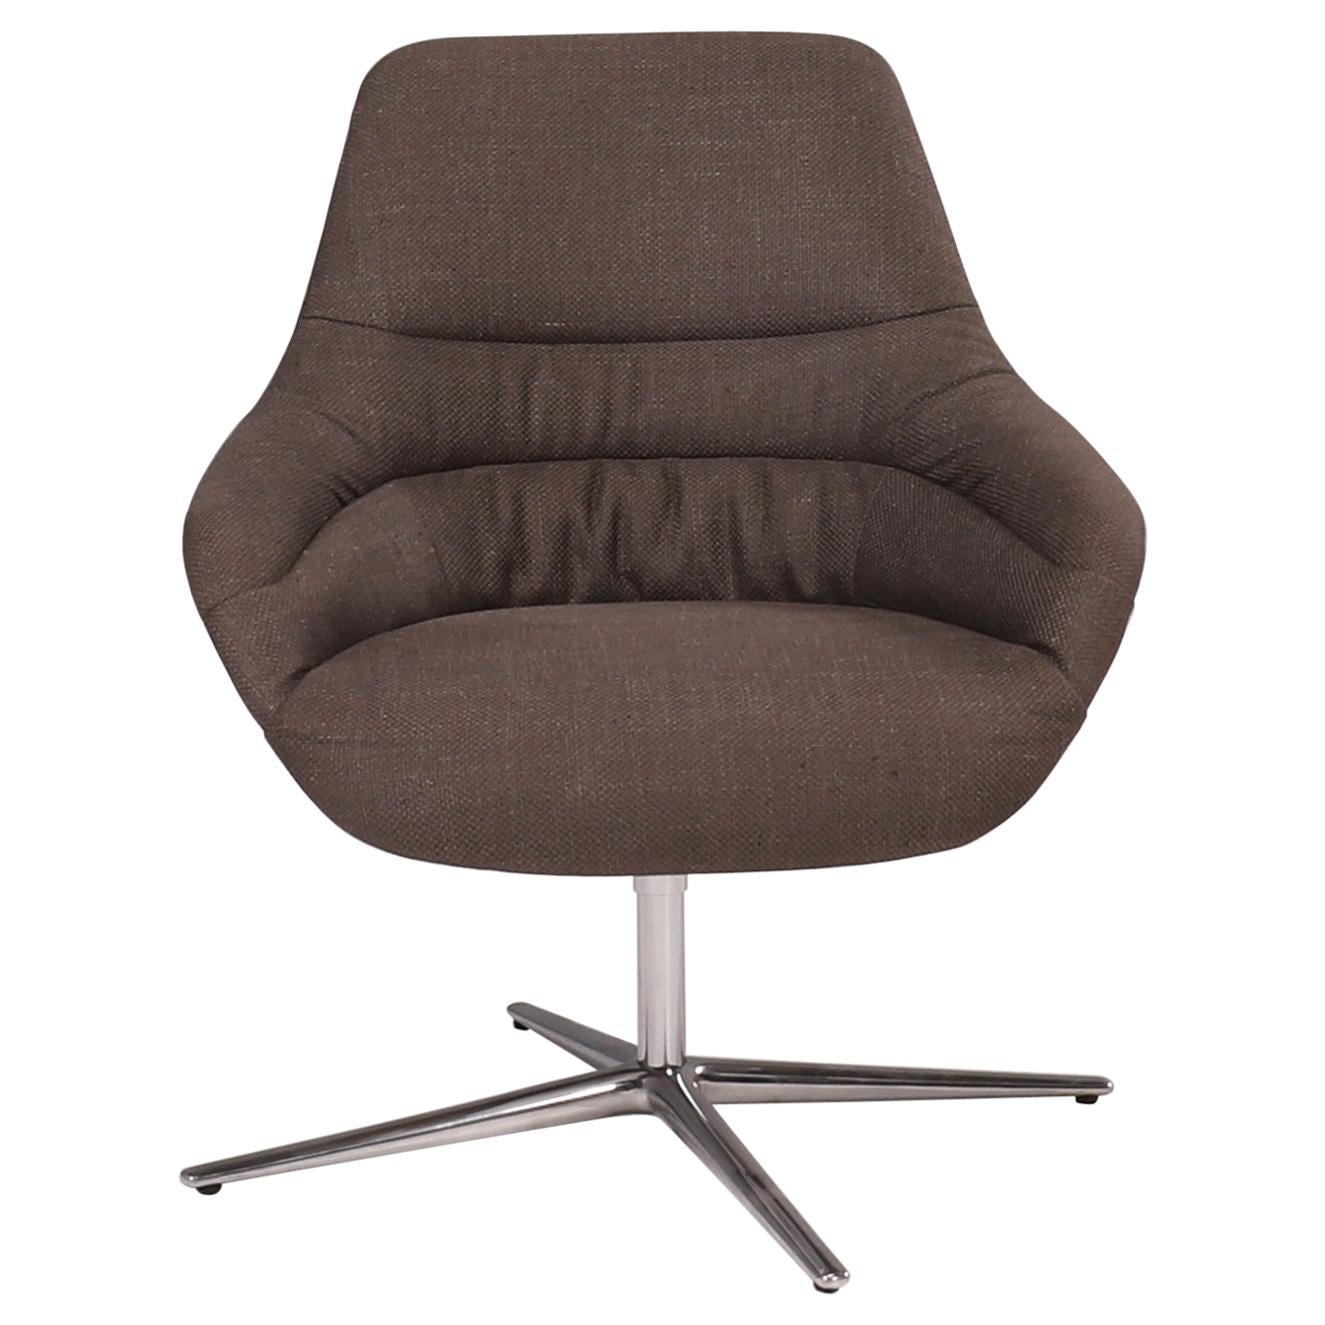 Walter Knoll 'Kyo' Upholstered Lounge Chair by PearsonLloyd